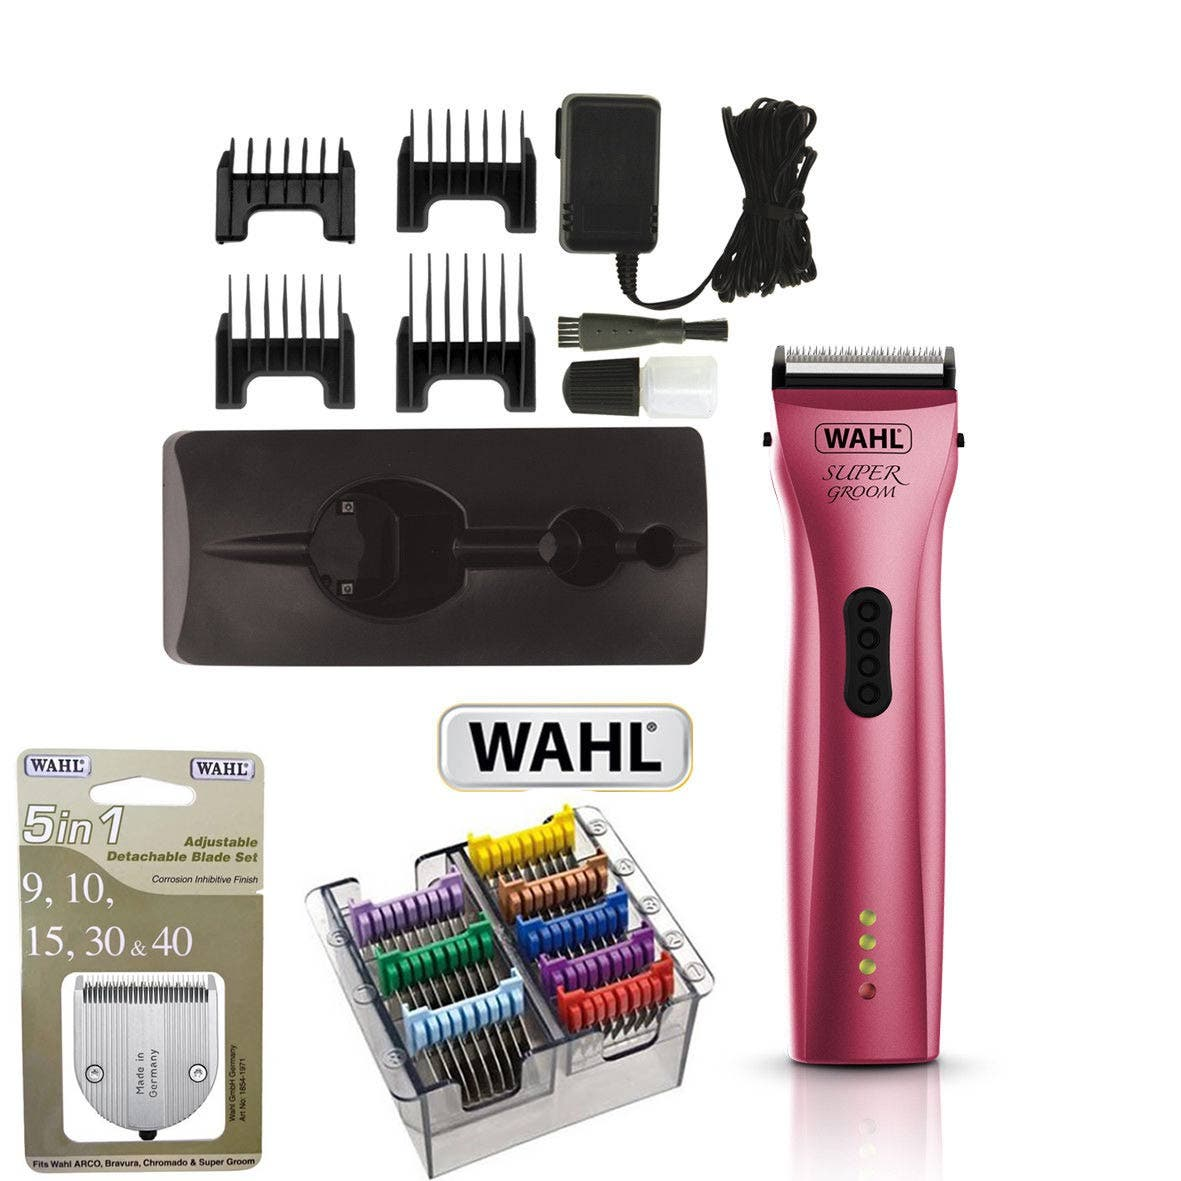 Wahl SUPER GROOM PINK Animal Cordless Clipper + 5 in 1 Stainless Steel Guides + 5 in 1 Blade